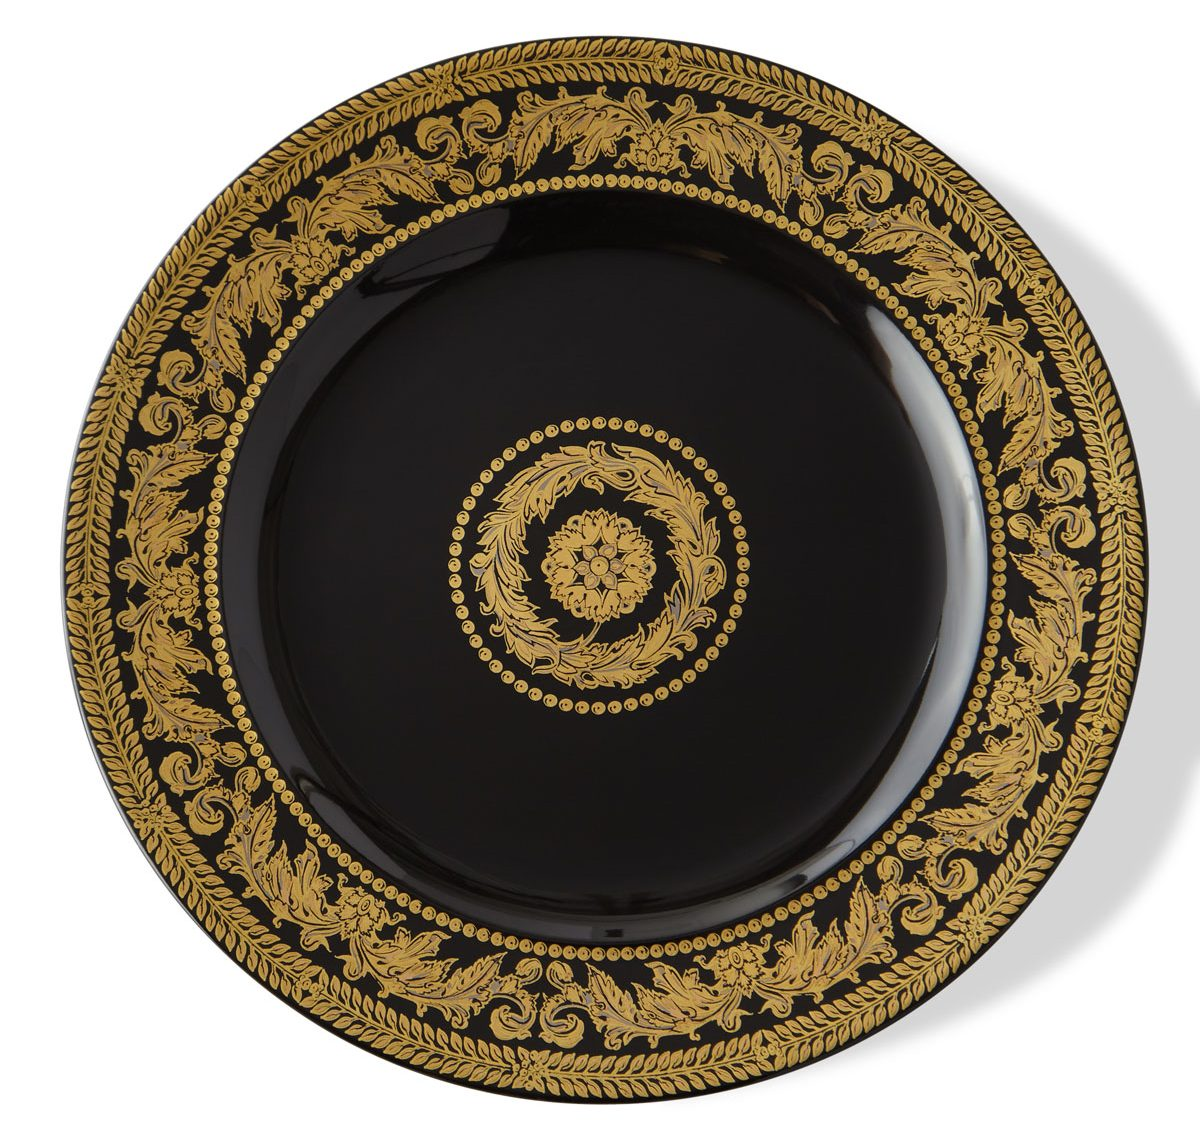 Versace-gold-baroque-3-piece-set-teacup-saucer-plate - luxury dinnerware